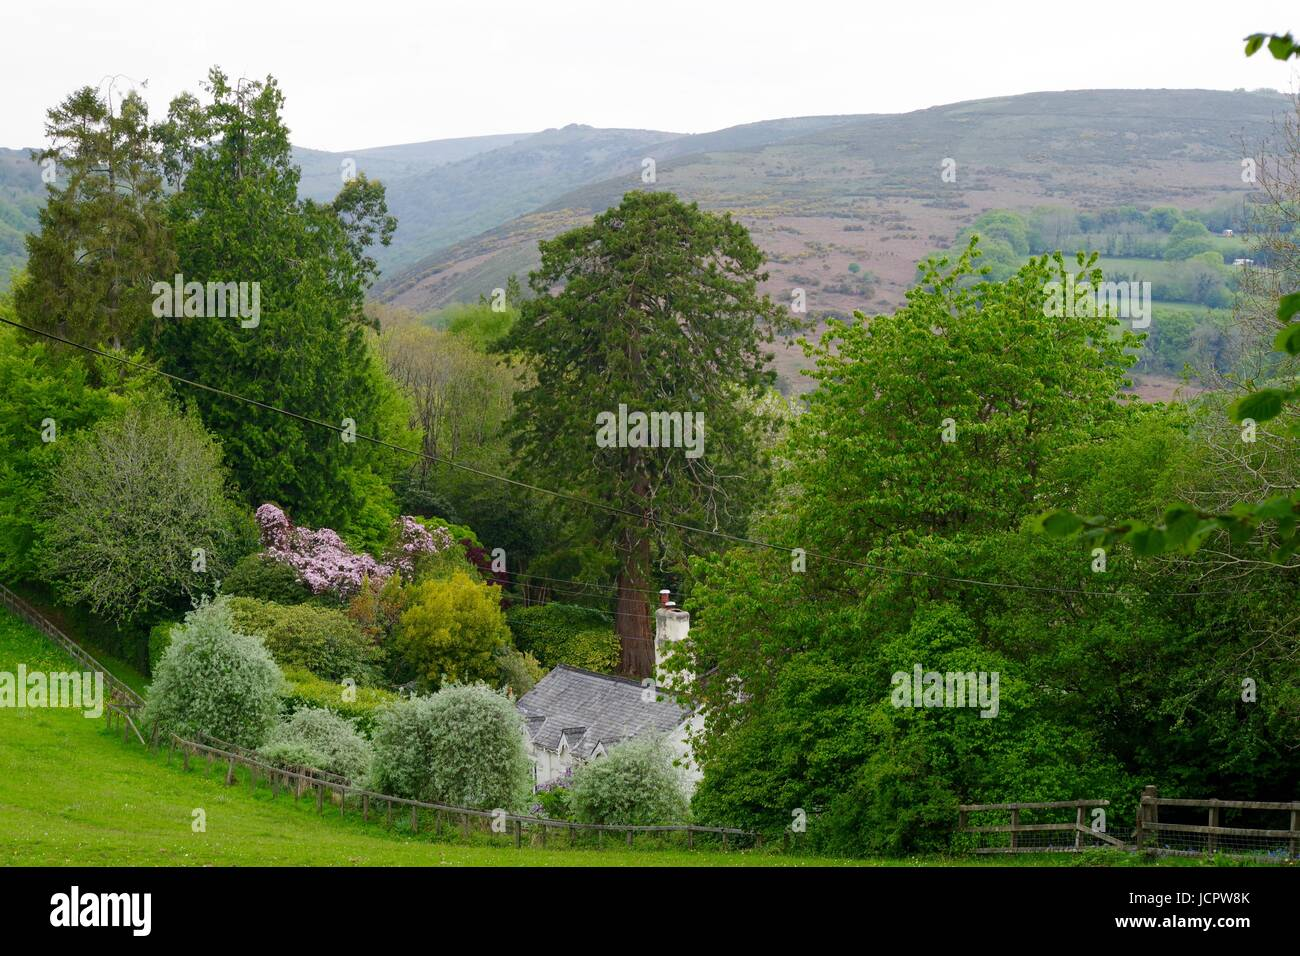 Holne Cottage and Garden, Overlooking the River Dart Valley, Near Holne Wood. Dartmoor, Devon, UK. May, 2017. - Stock Image